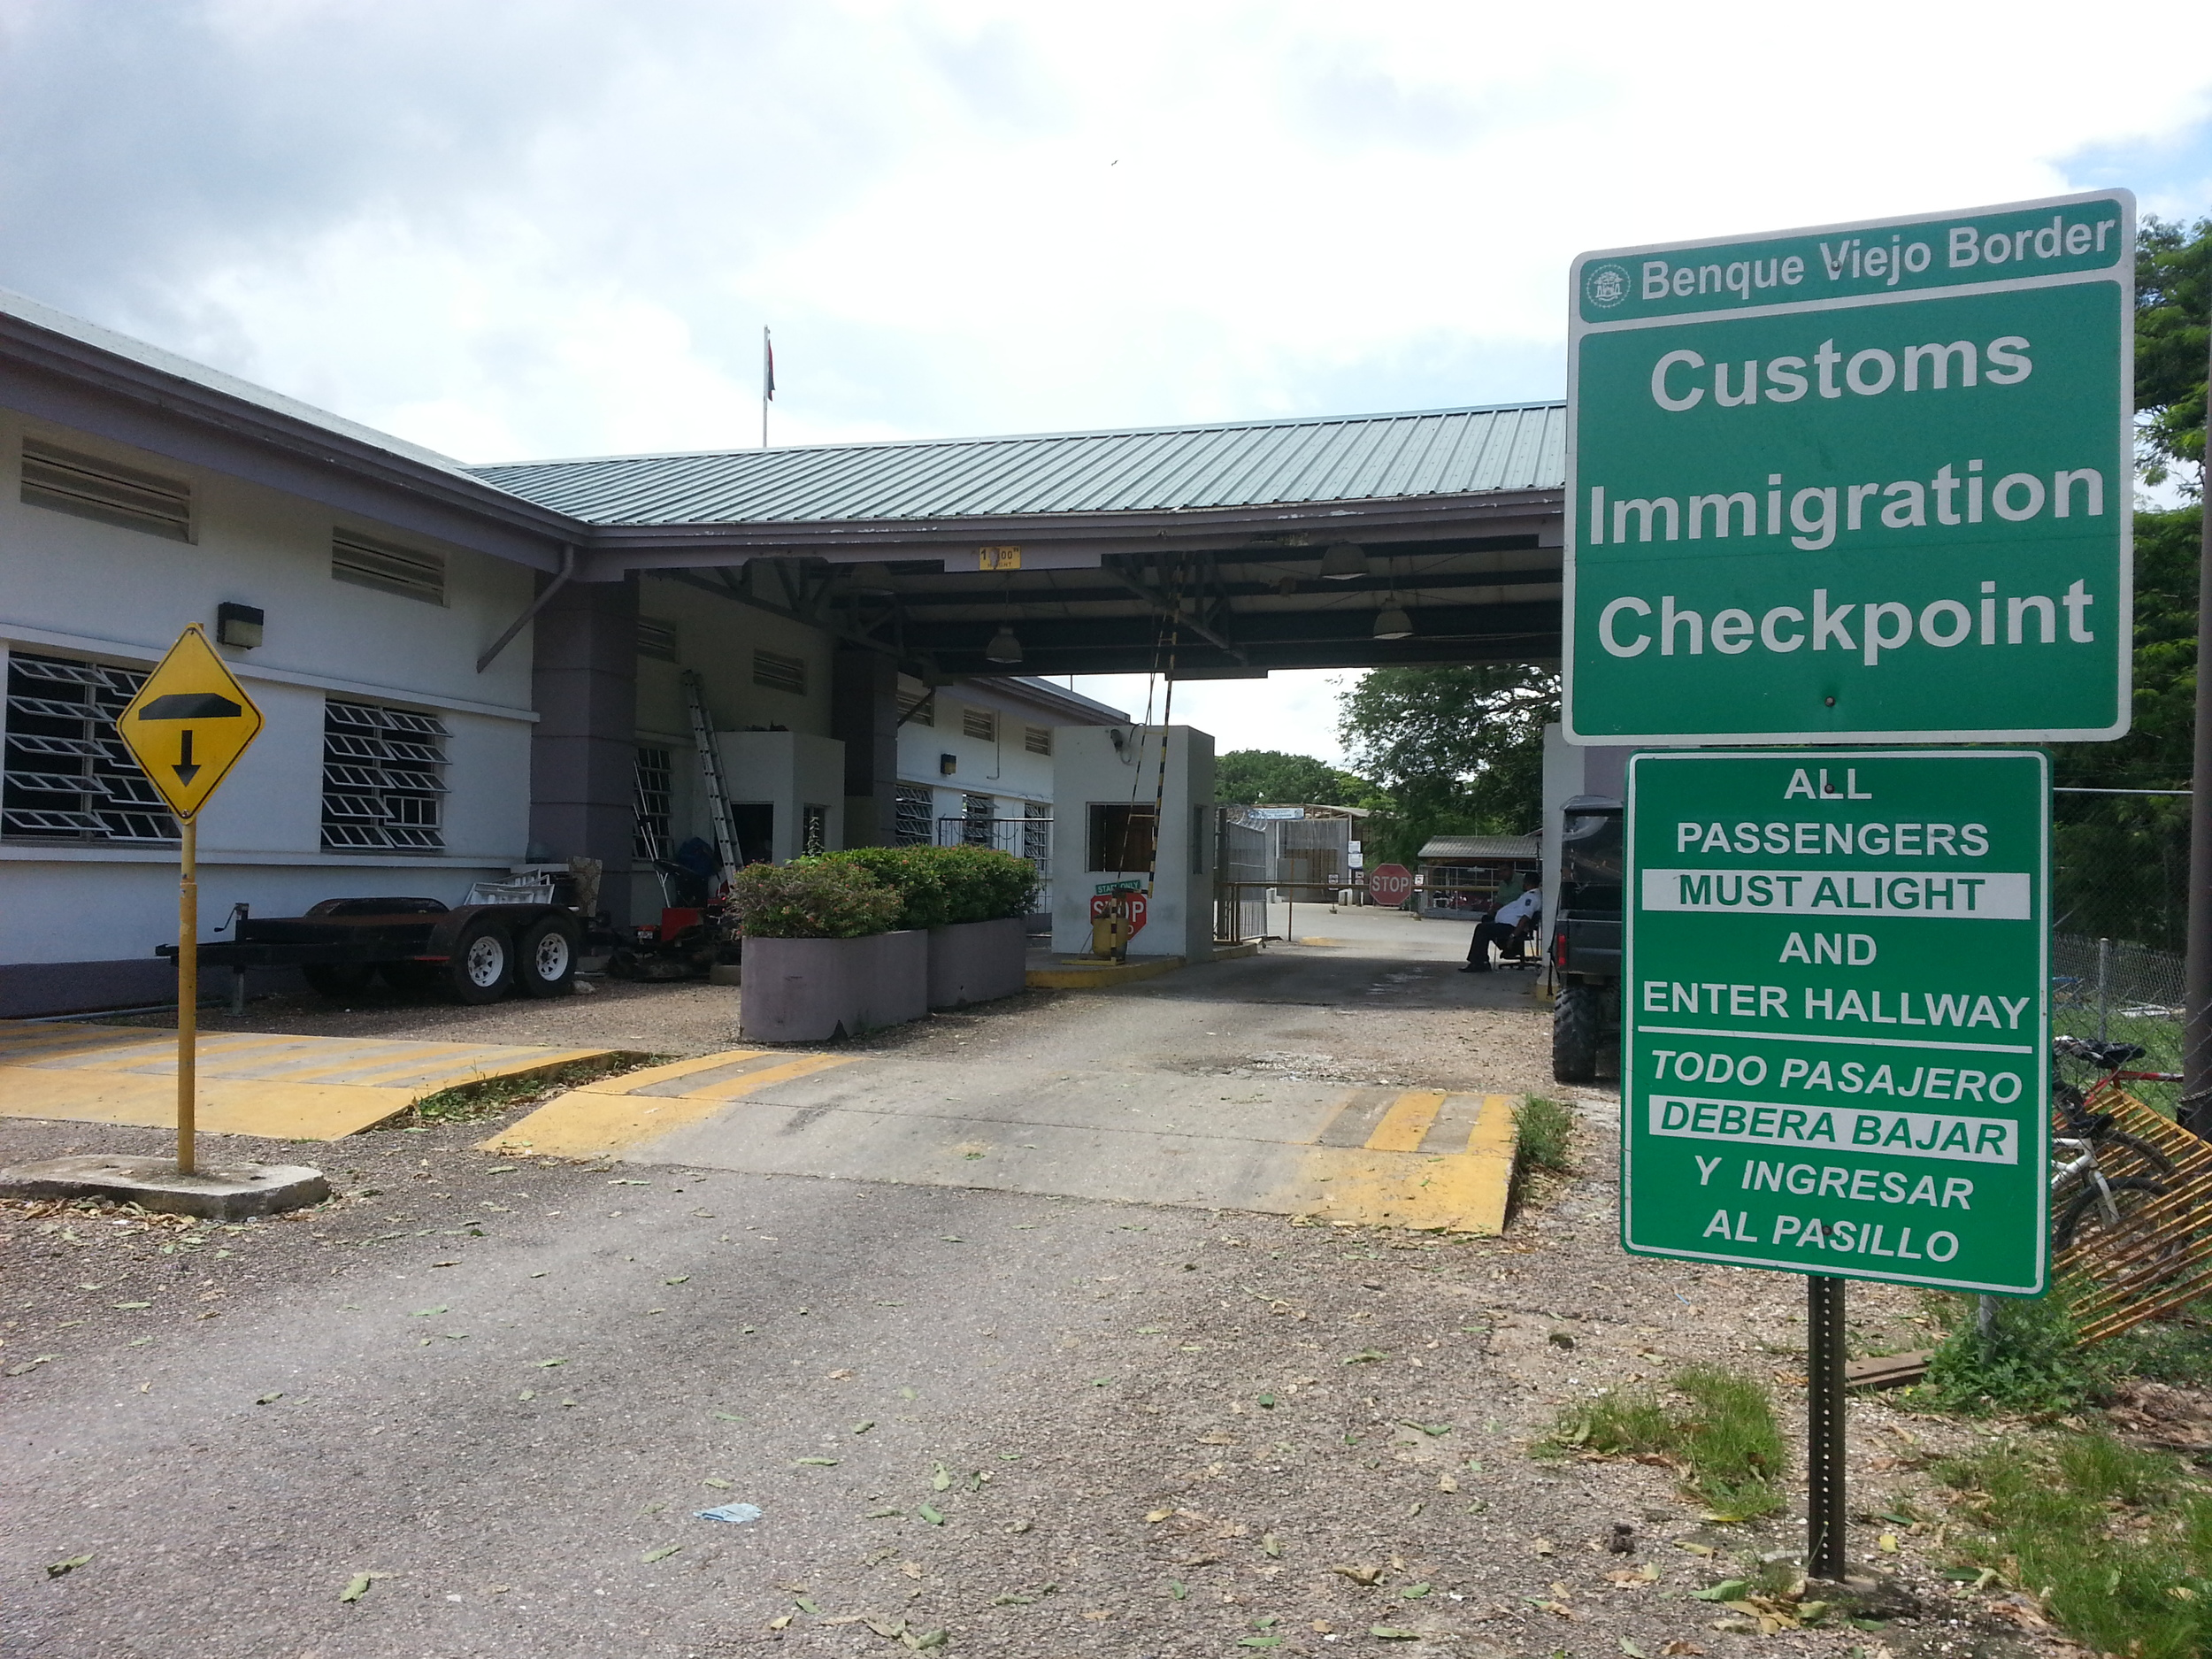 Border check point